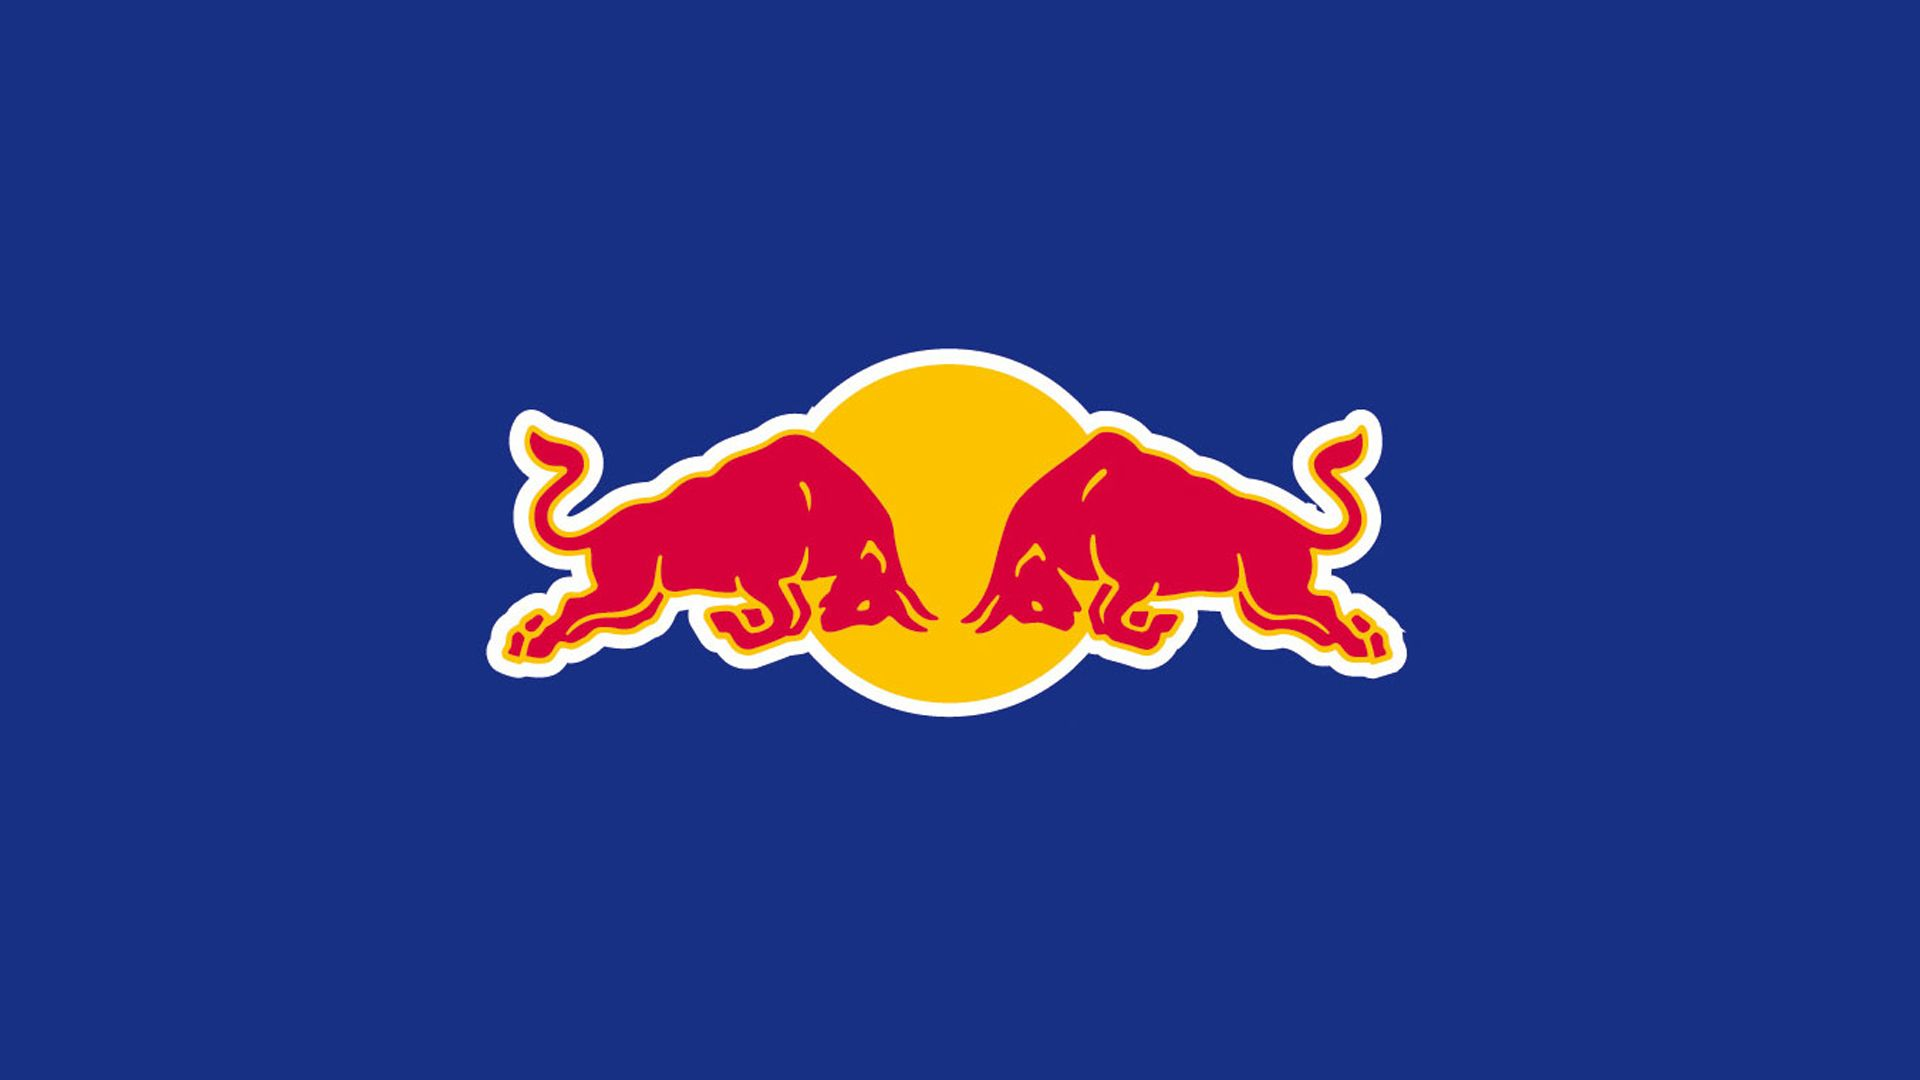 Bull Wallpapers Group With 61 Items: Red Bull Backgrounds